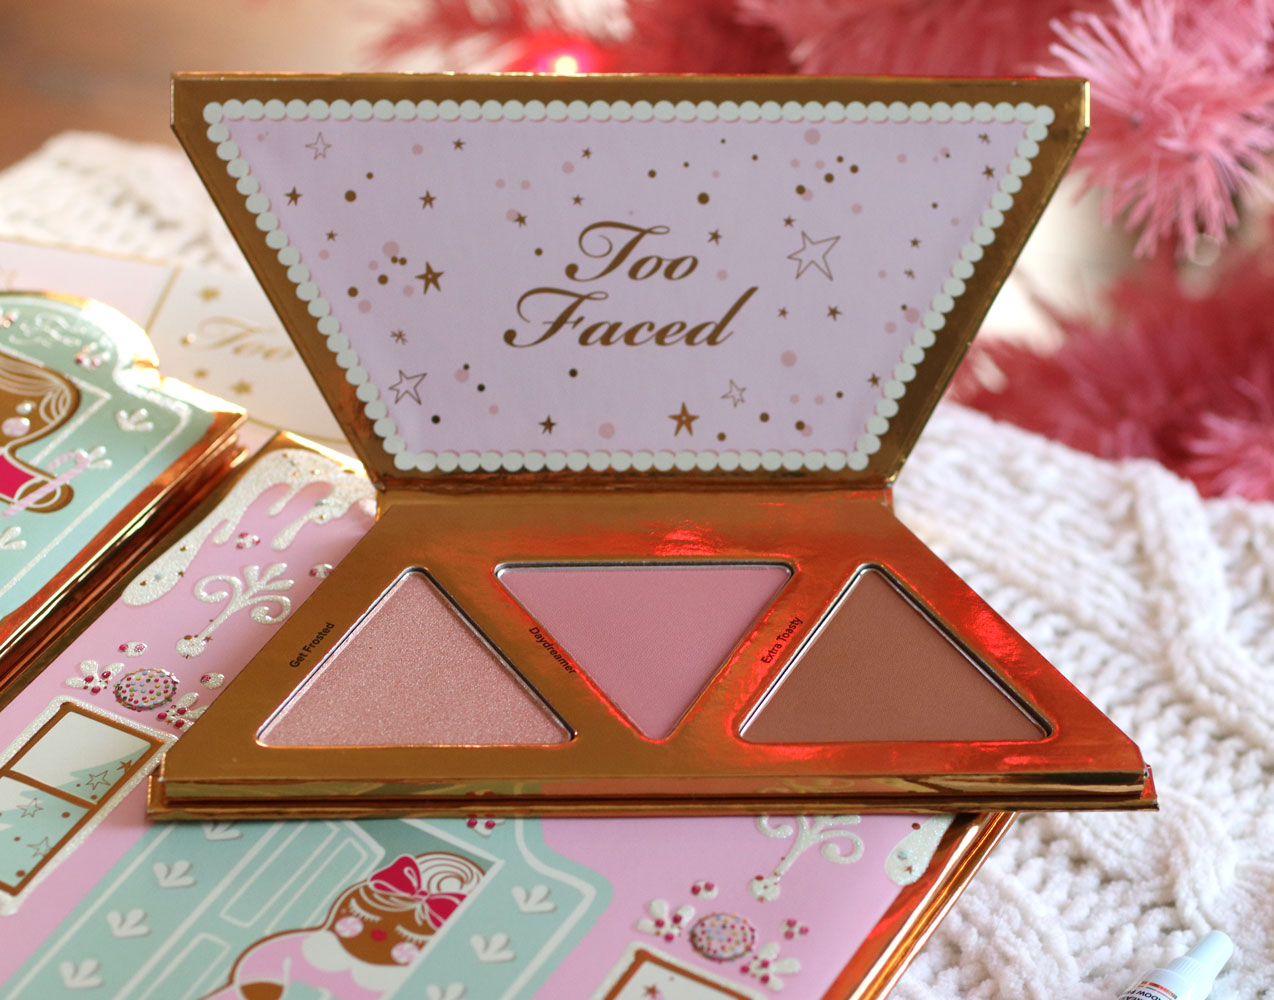 Too Faced Christmas Cookie House Party face palette